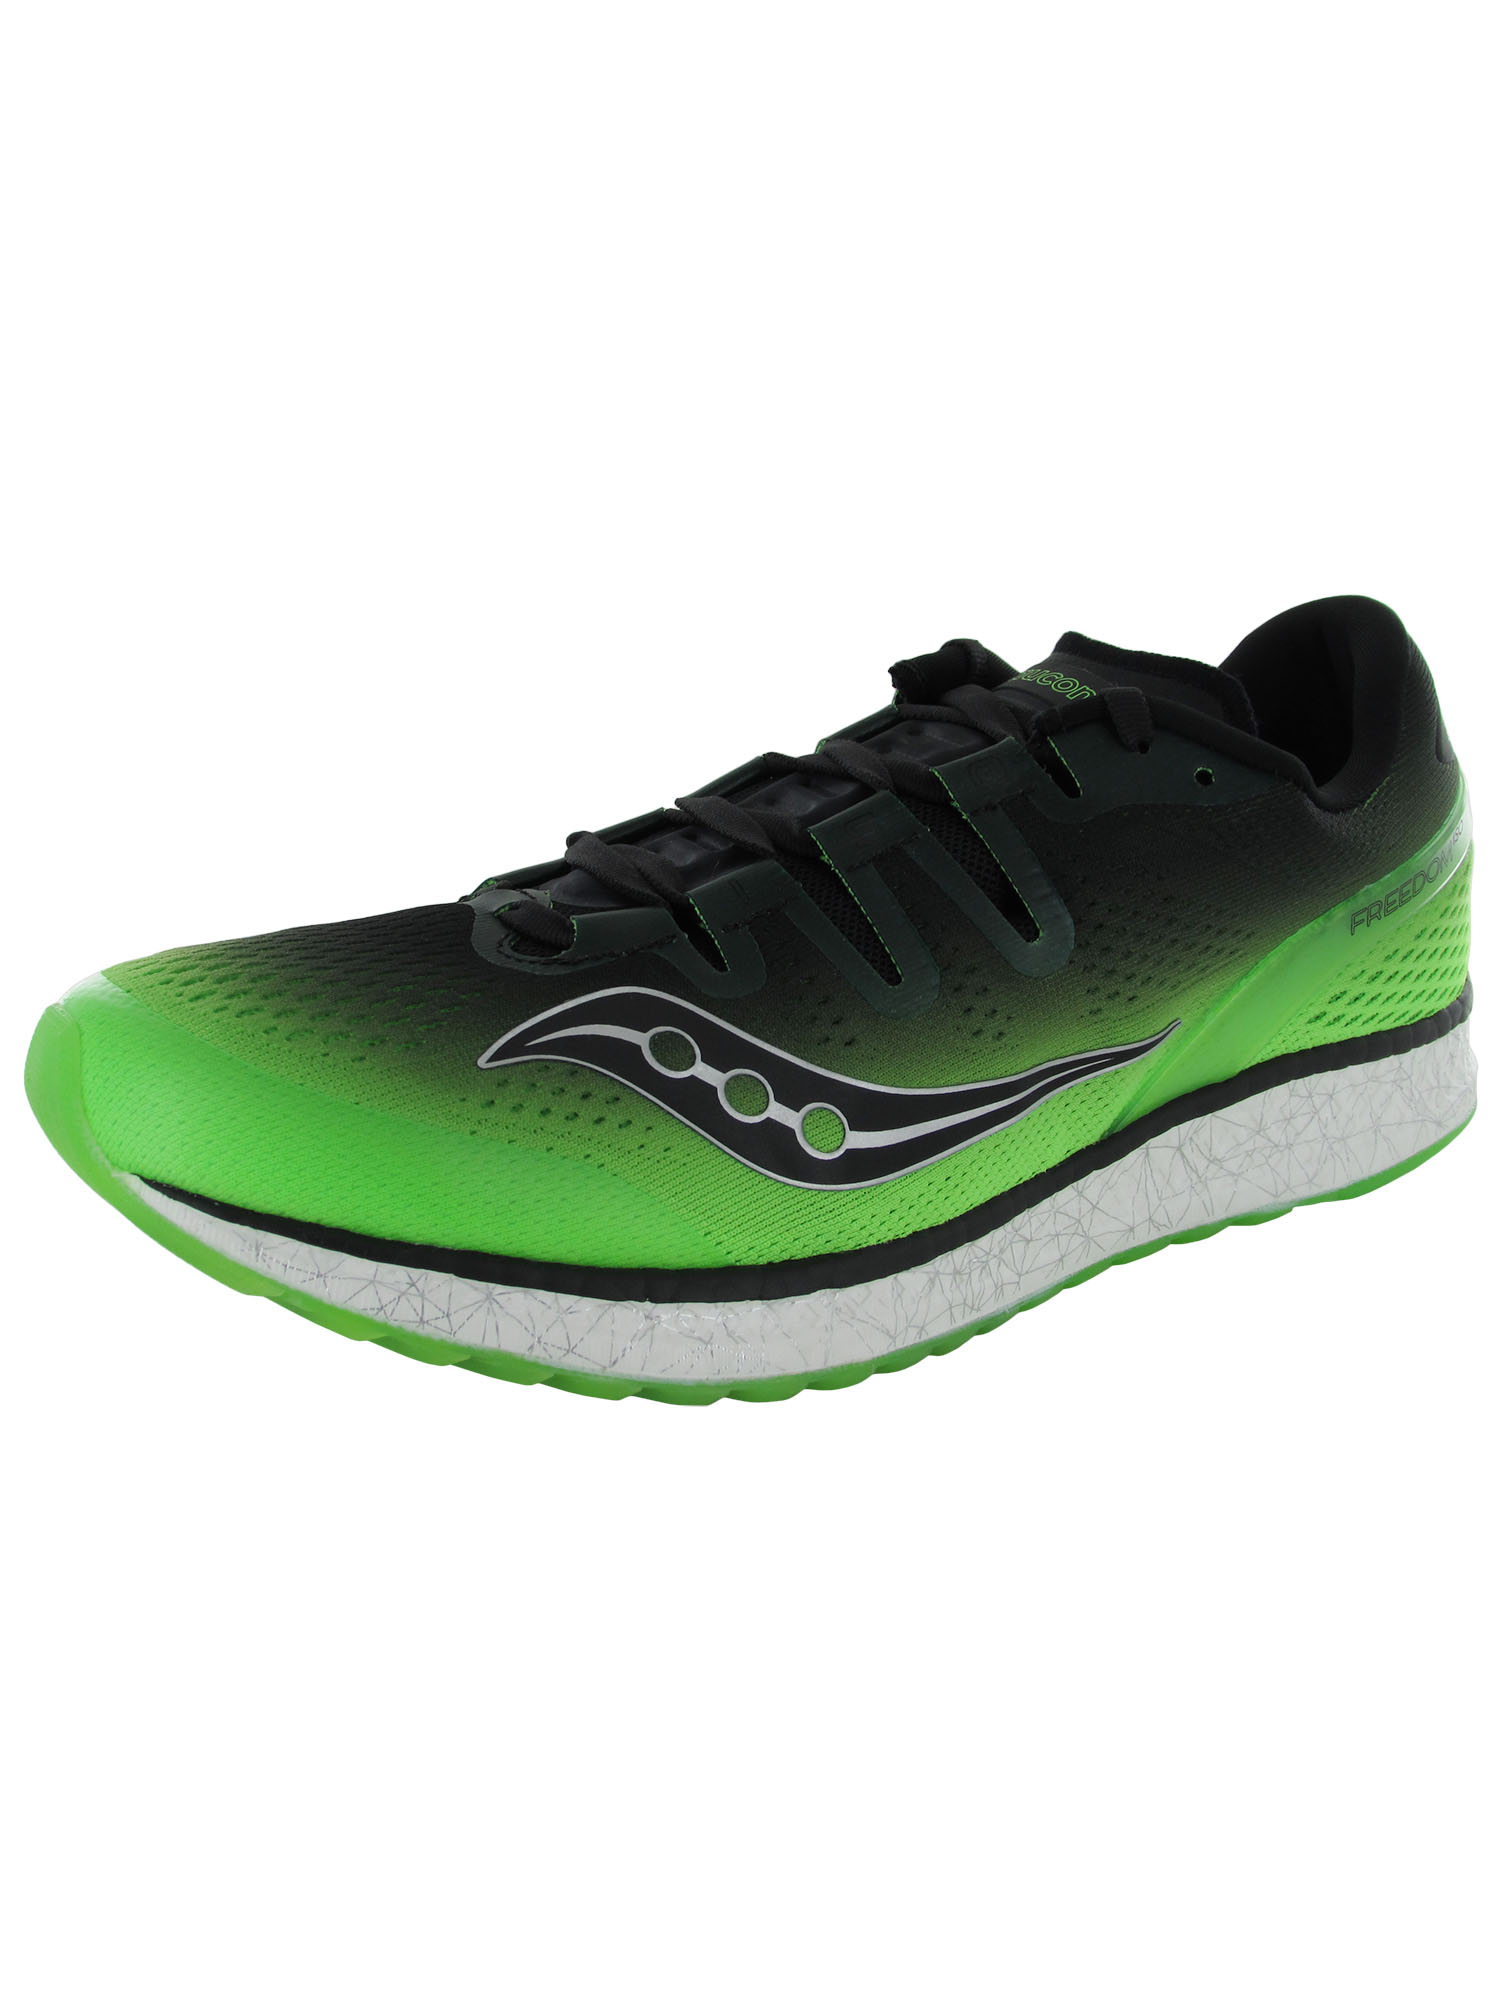 Saucony Mens Freedom ISO Running Sneaker Shoes by Saucony